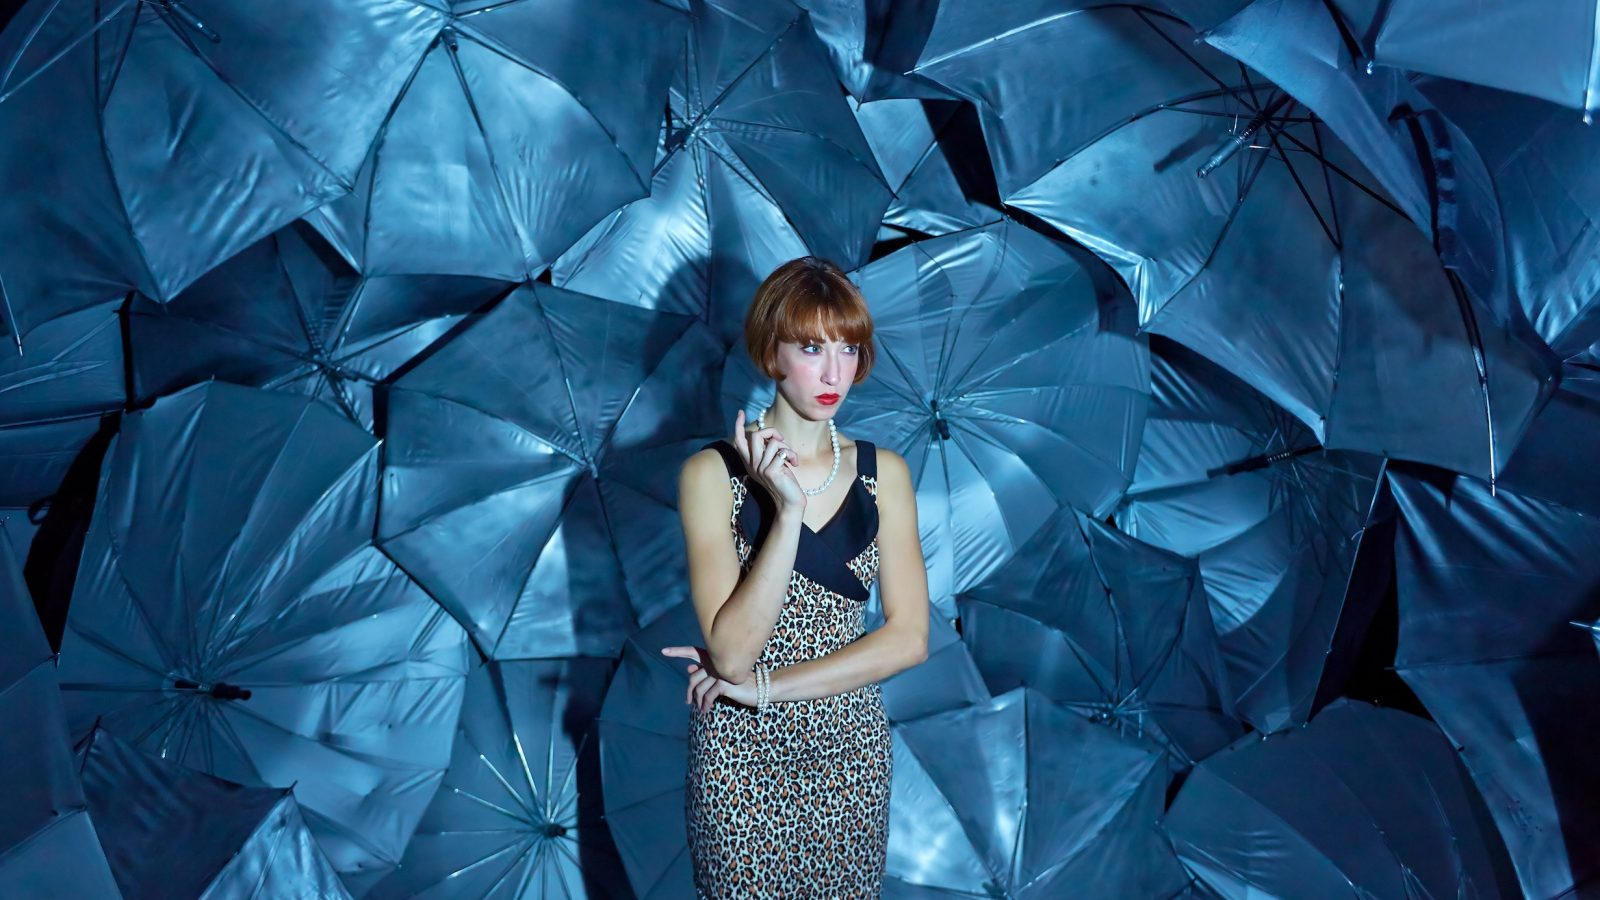 A woman stood infront of a wall made of blue umbrellas smoking.